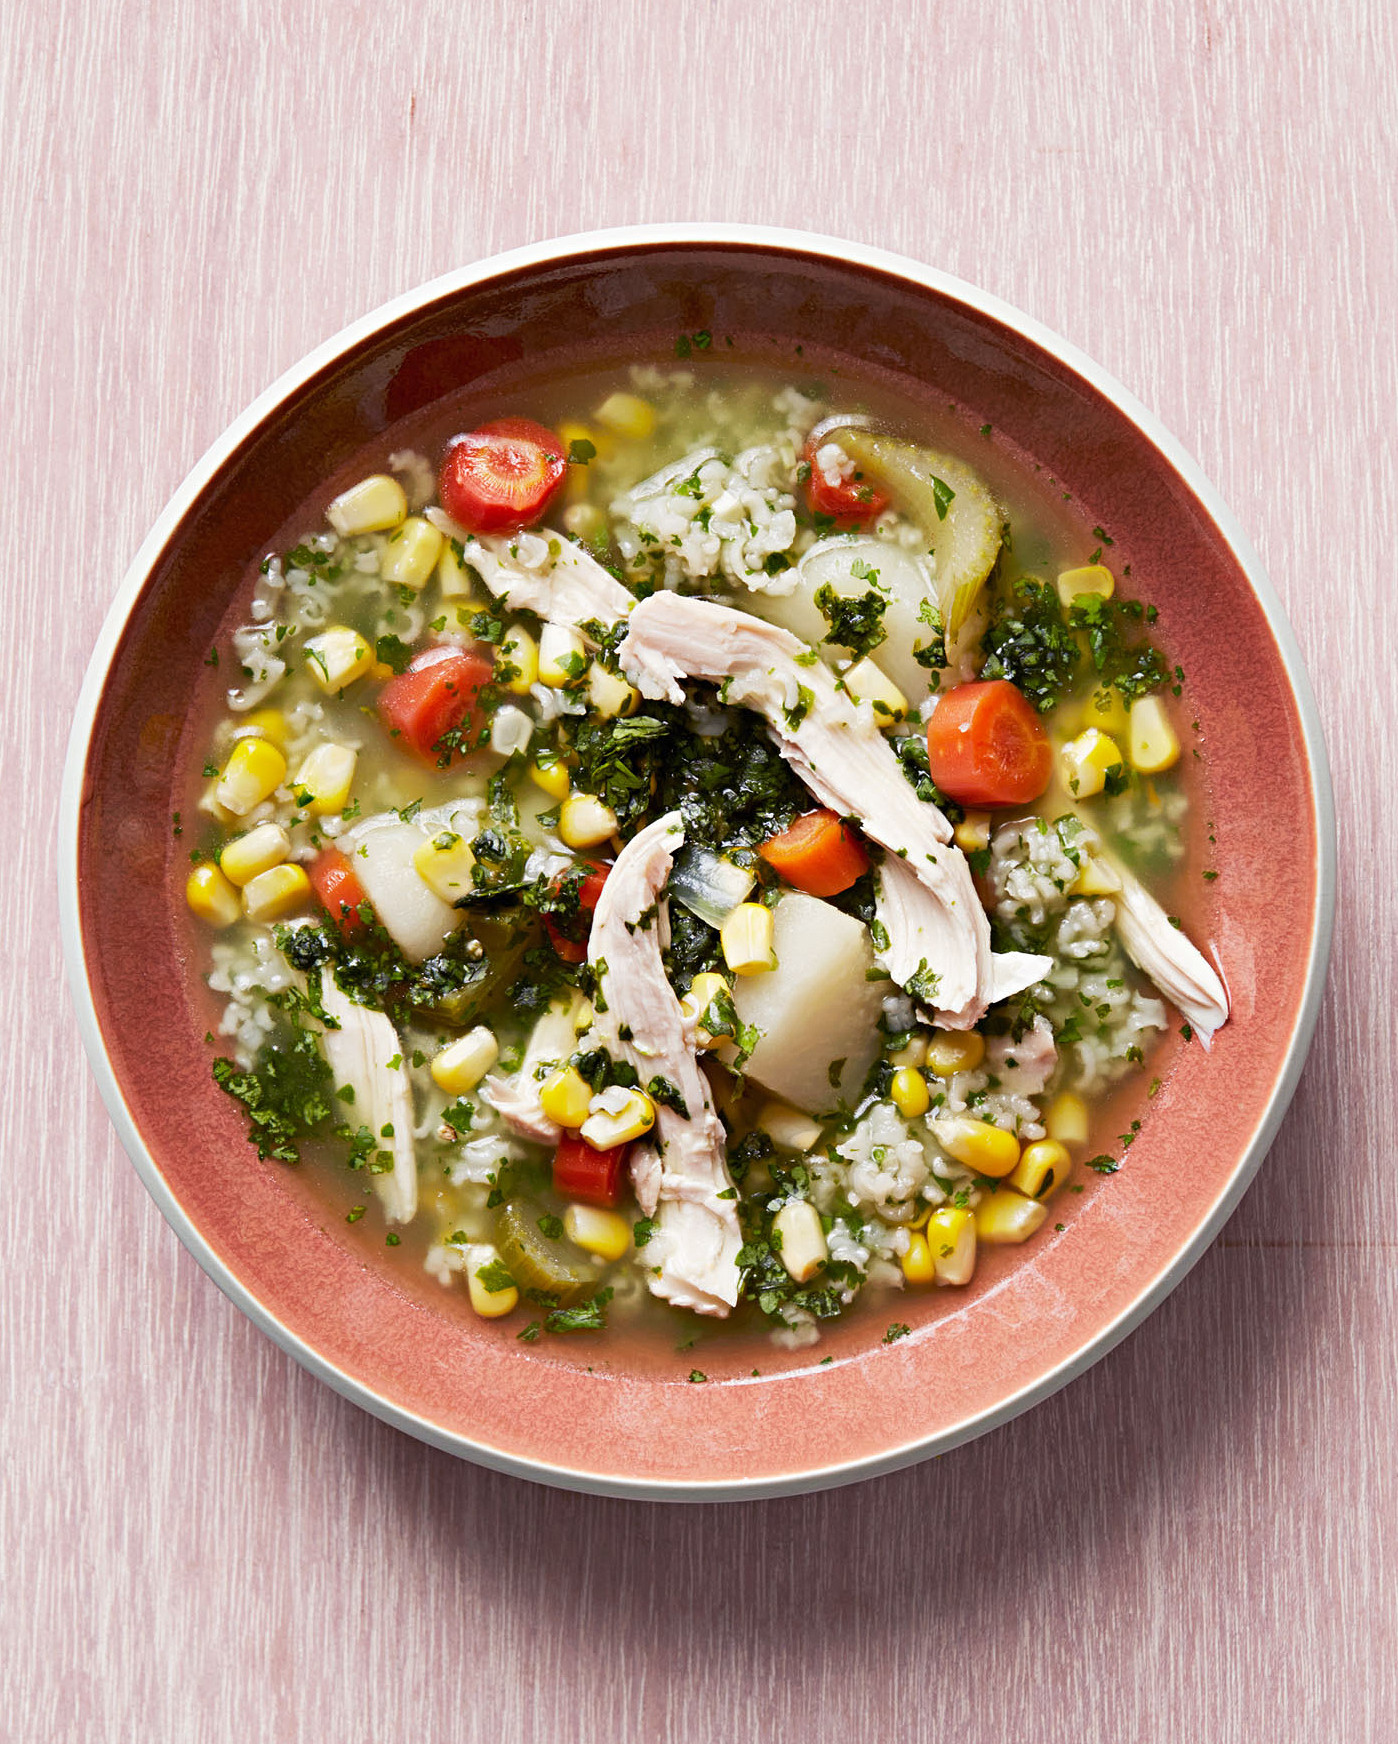 Meal Ideas With Chicken Noodle Soup: Healthy And Hearty Dinners Because It's Cold Outside